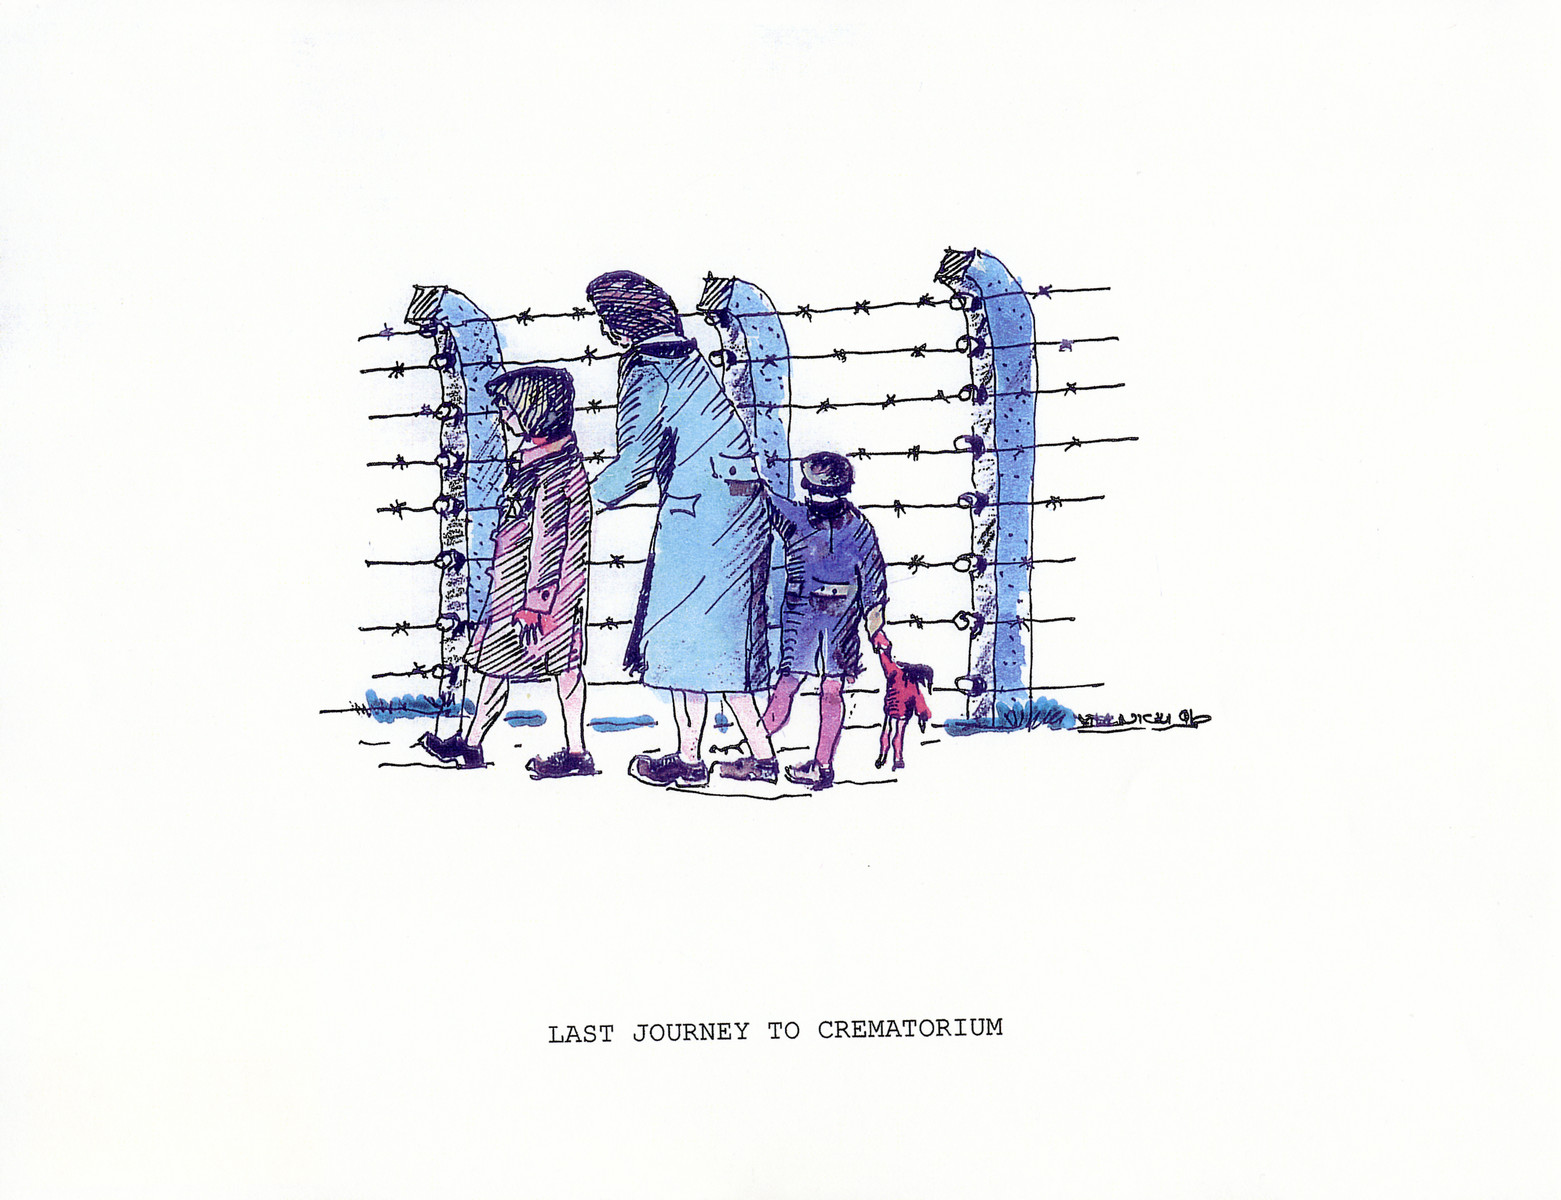 """A watercolor and ink drawing from the pictorial memoire entitled,  """"Images from Auschwitz-Birkenau, by John Wiernicki, Polish Resistance Fighter, Prisoner Number P150302.""""  The caption reads, """"Last journey to crematorium."""""""